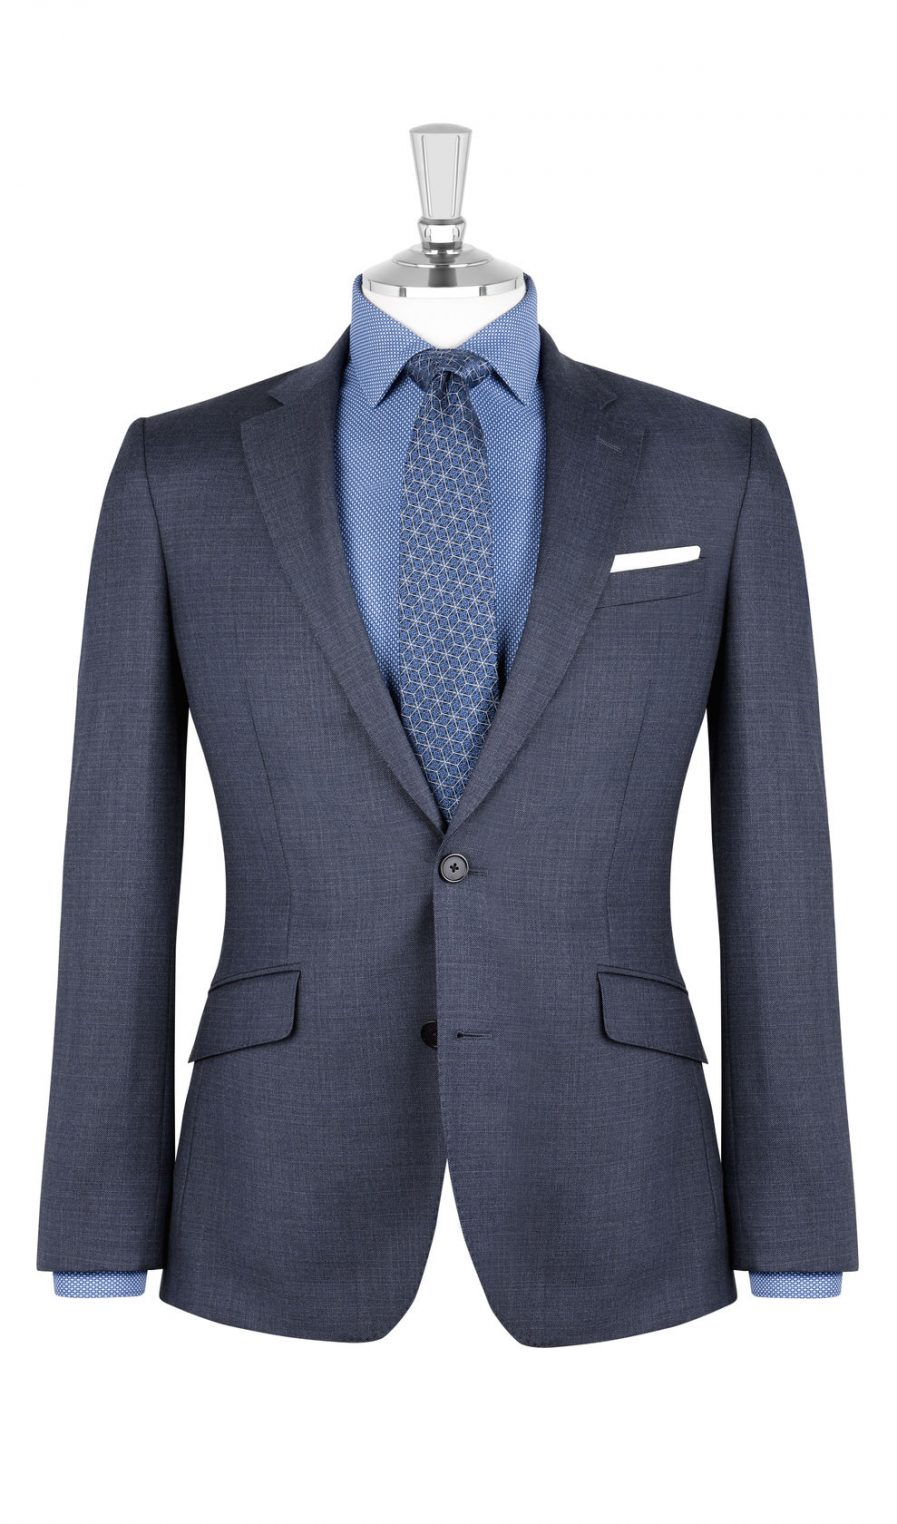 bespoke suit, ready to wear suit lagos nigeria